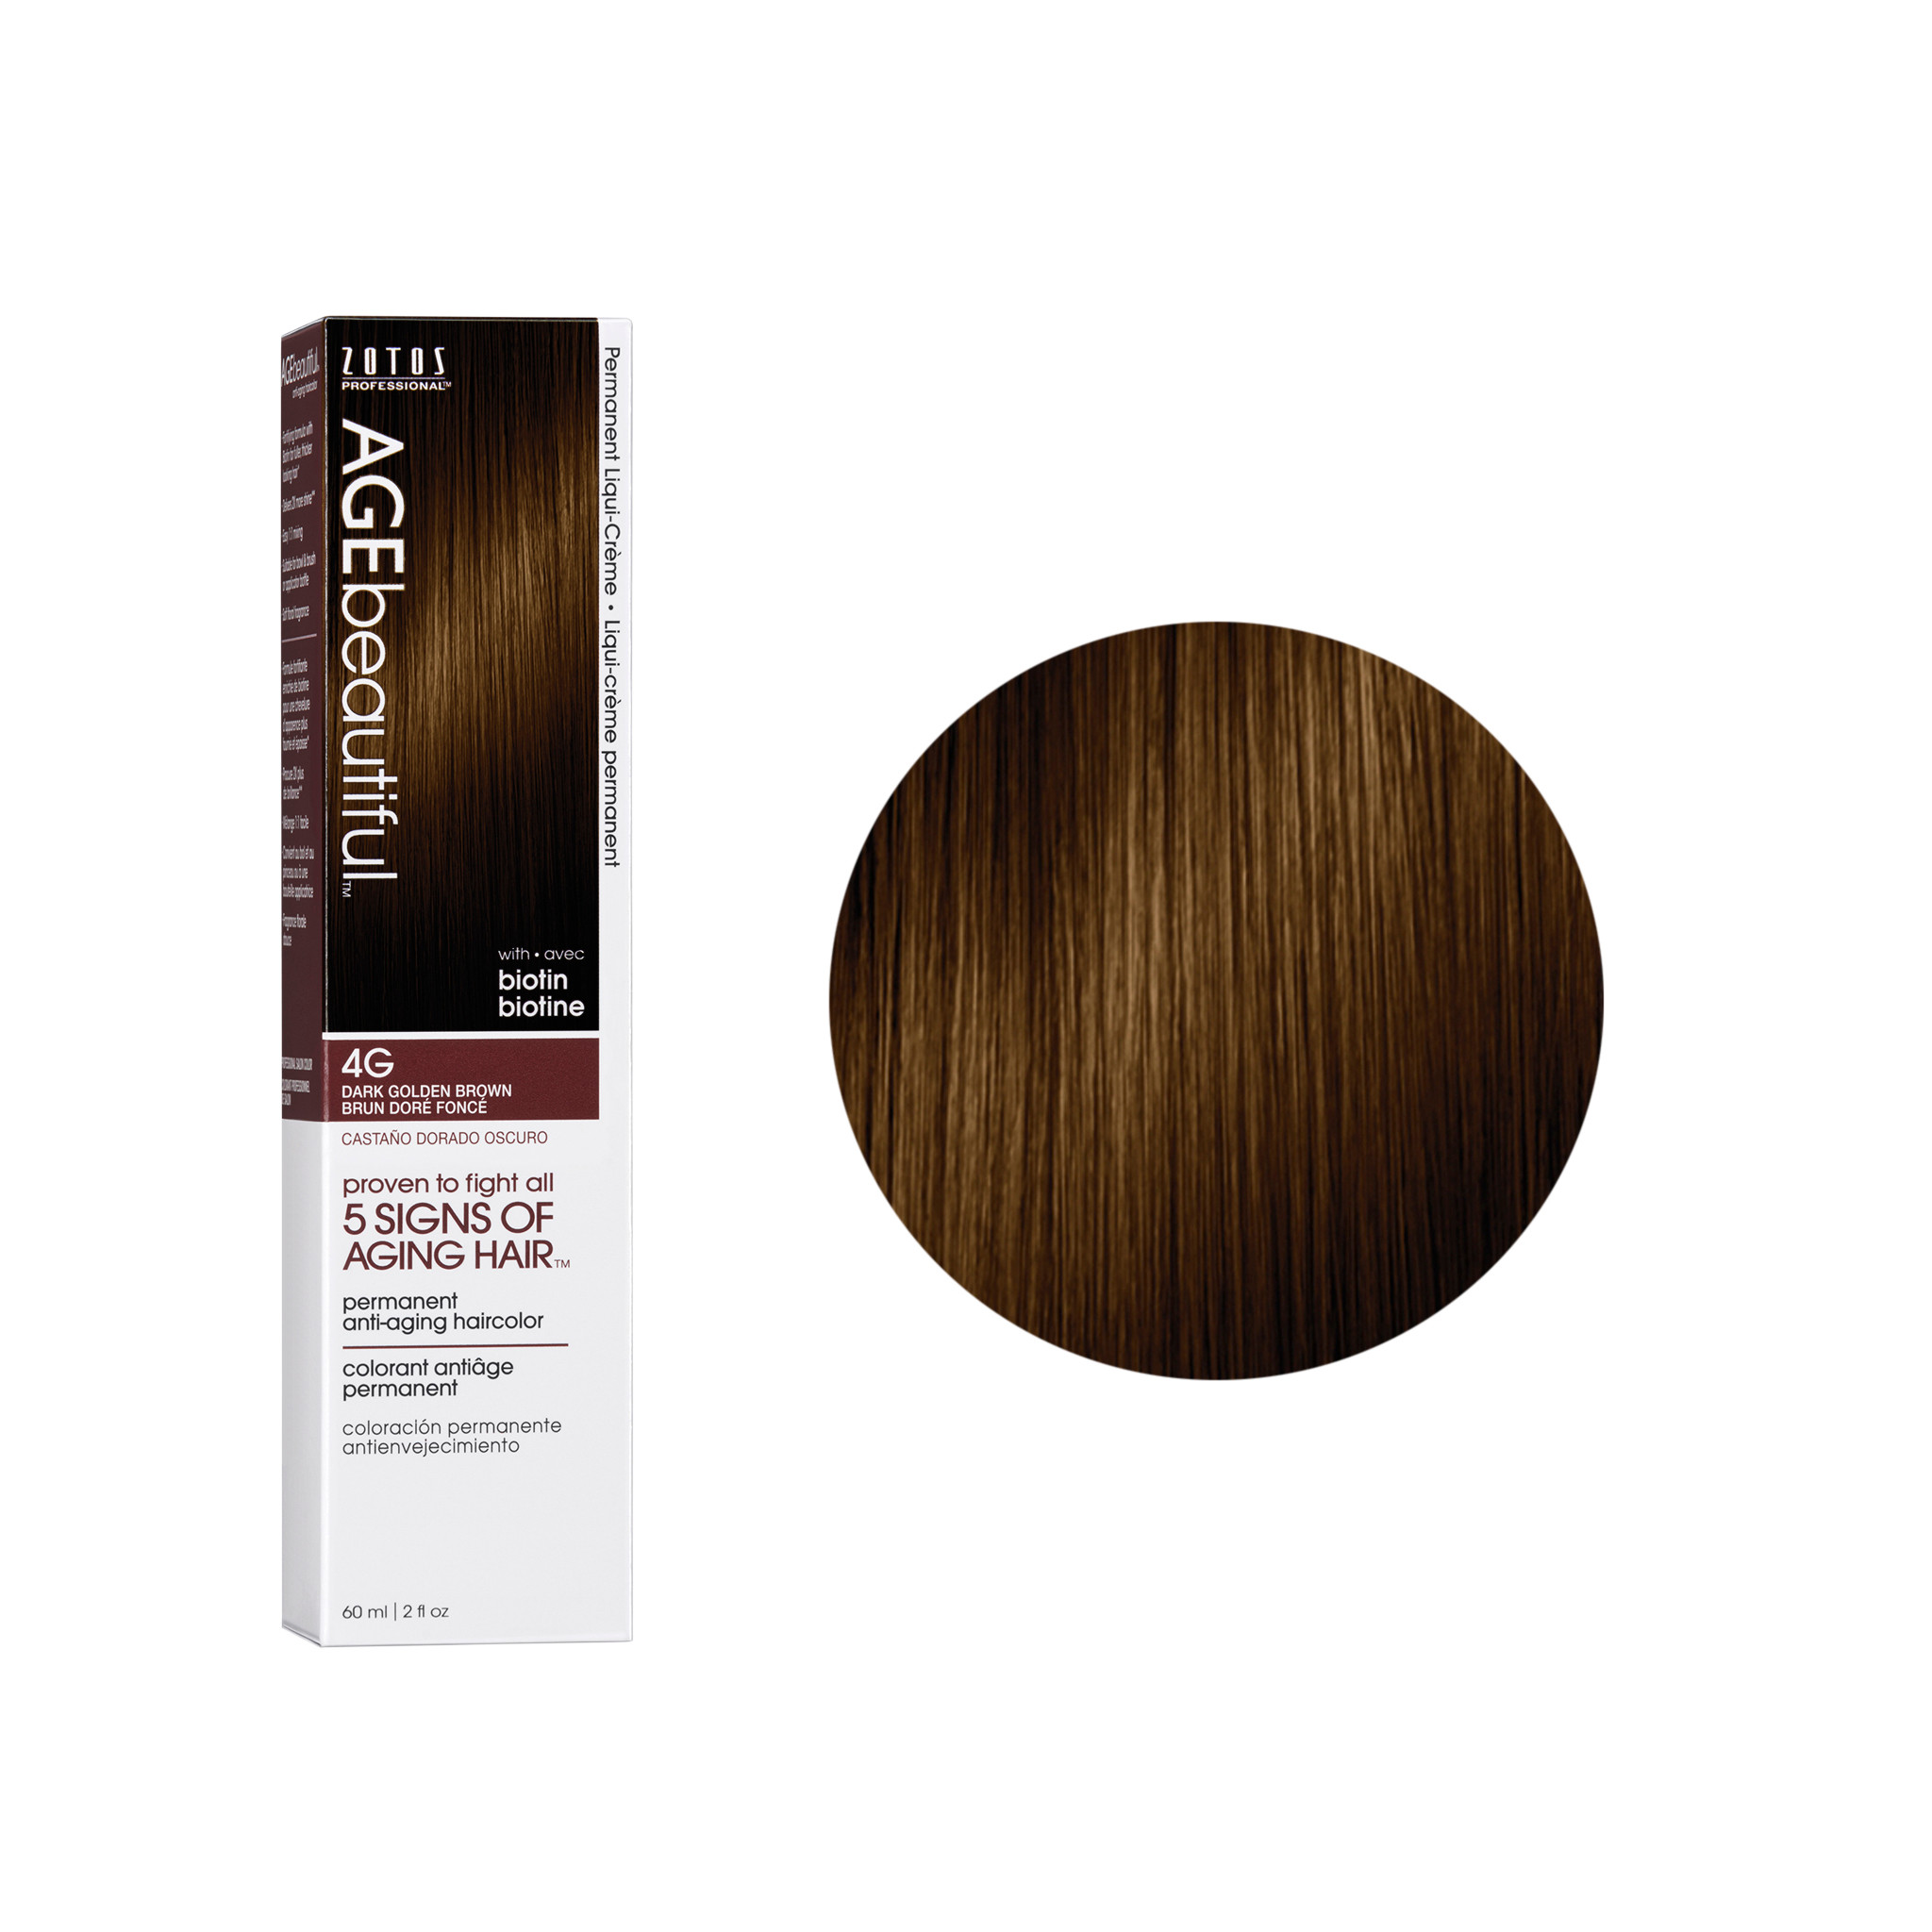 Age Beautiful is the first professional  hair colour solution to combat aging hair. Anti-aging hair colour with 100% grey coverage. Age Beautiful has been formulated using selected key ingredients proven to fight the 5 signs of aging hair.